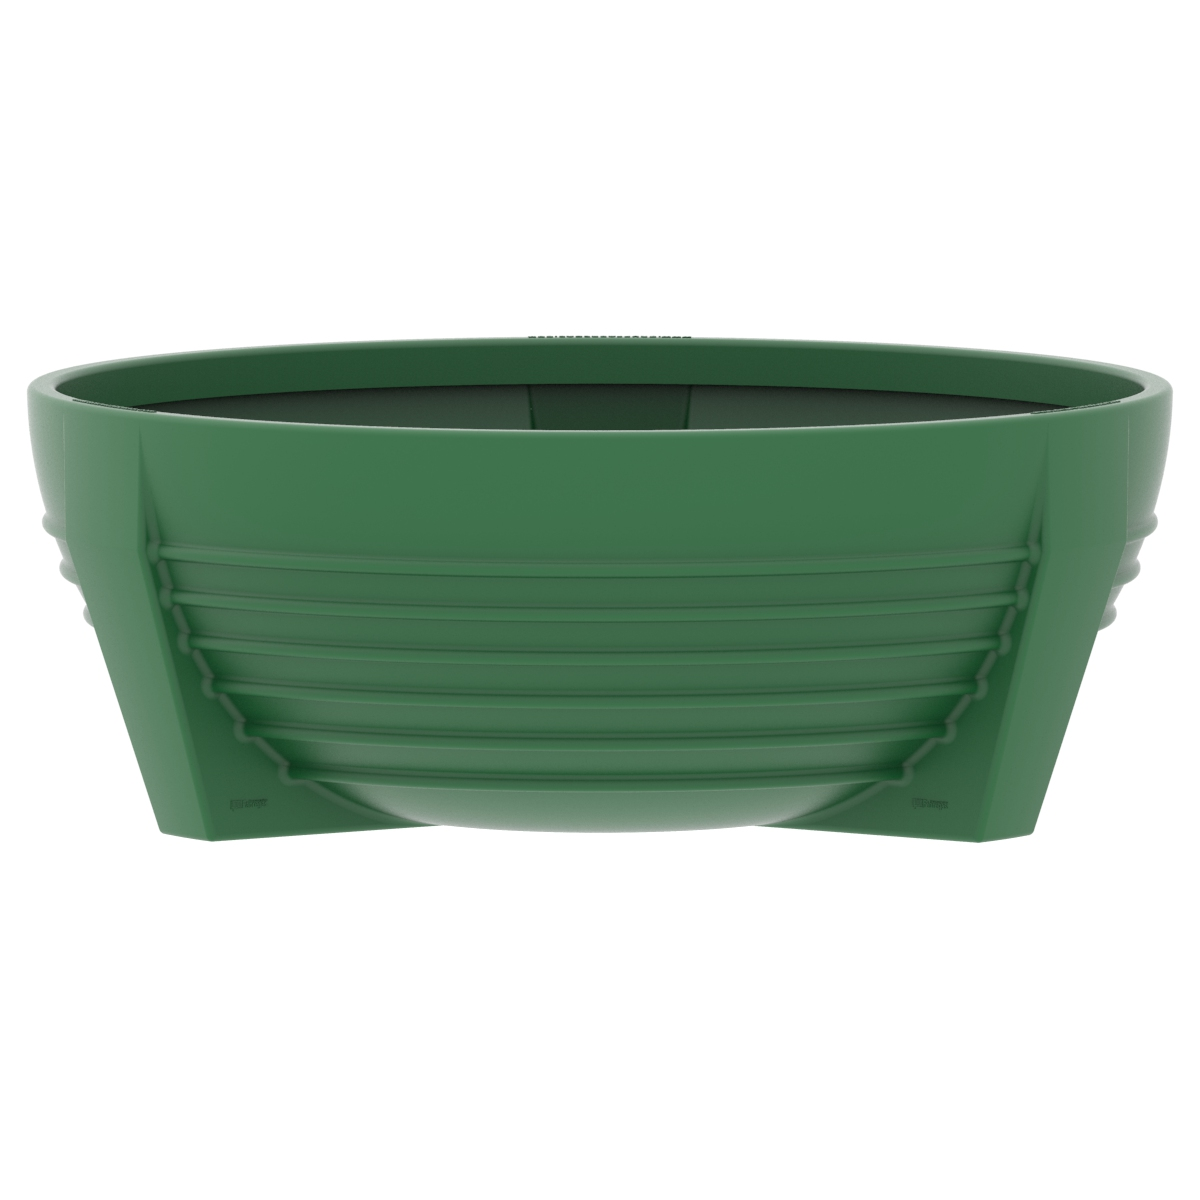 Green circular flower box of Polypropylene futura P-300